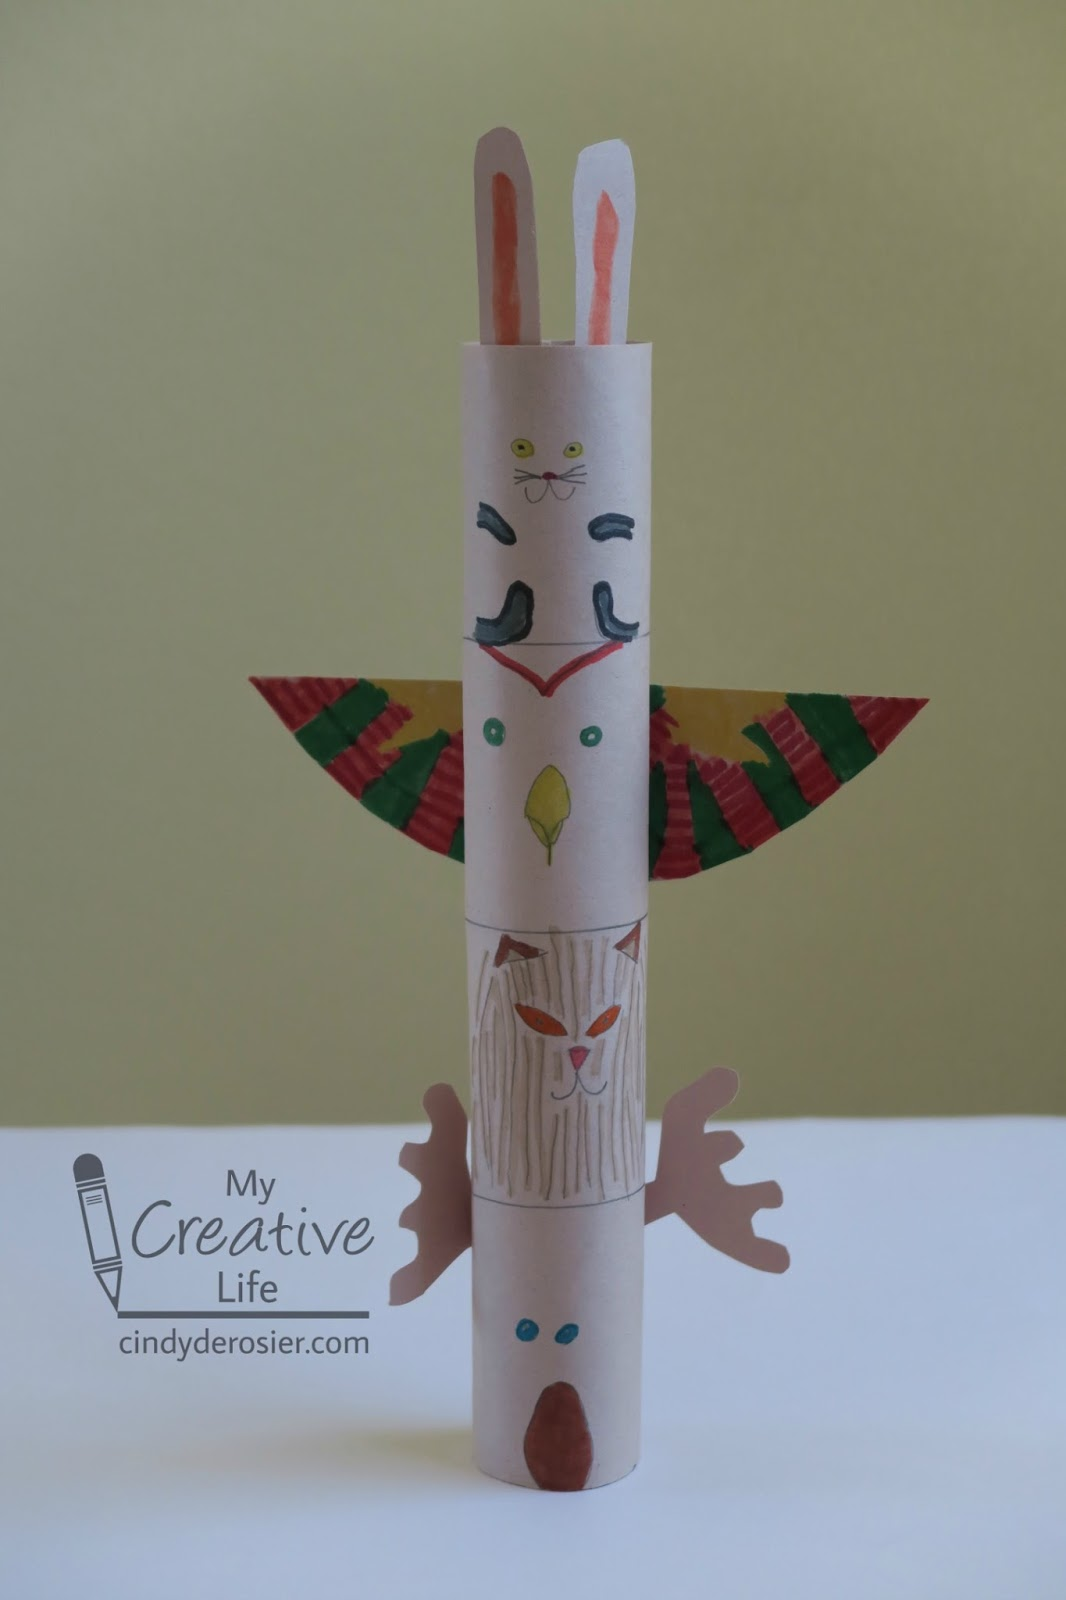 There's no better way to connec. Cindy Derosier My Creative Life Cardboard Tube Totem Pole Craft